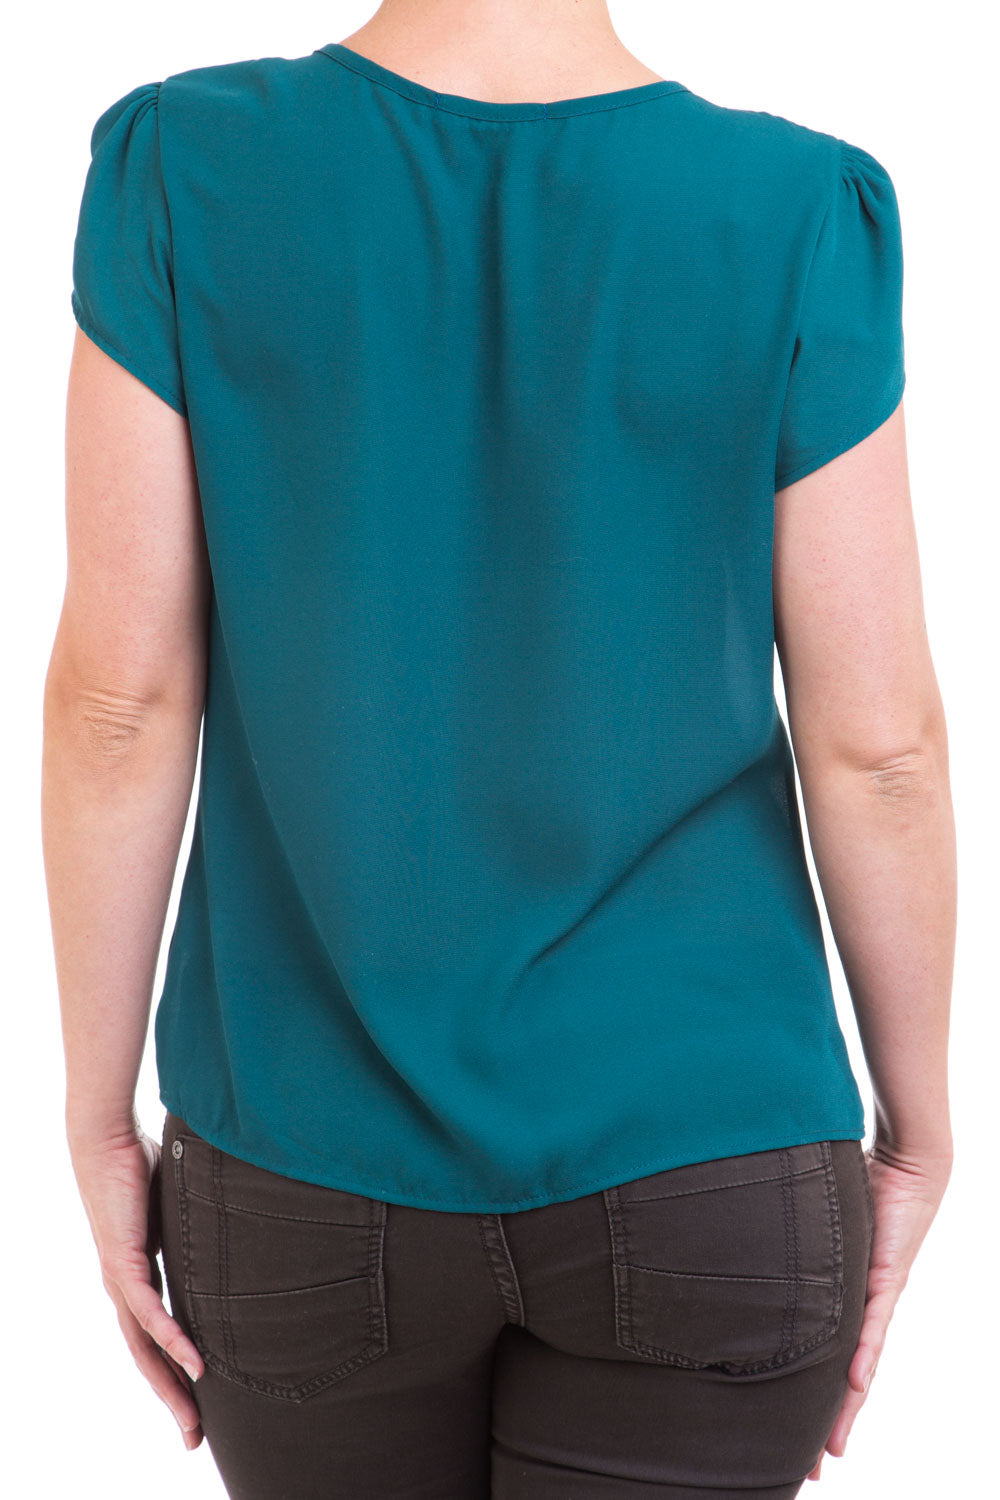 Type 2 So Lovely Top in Teal